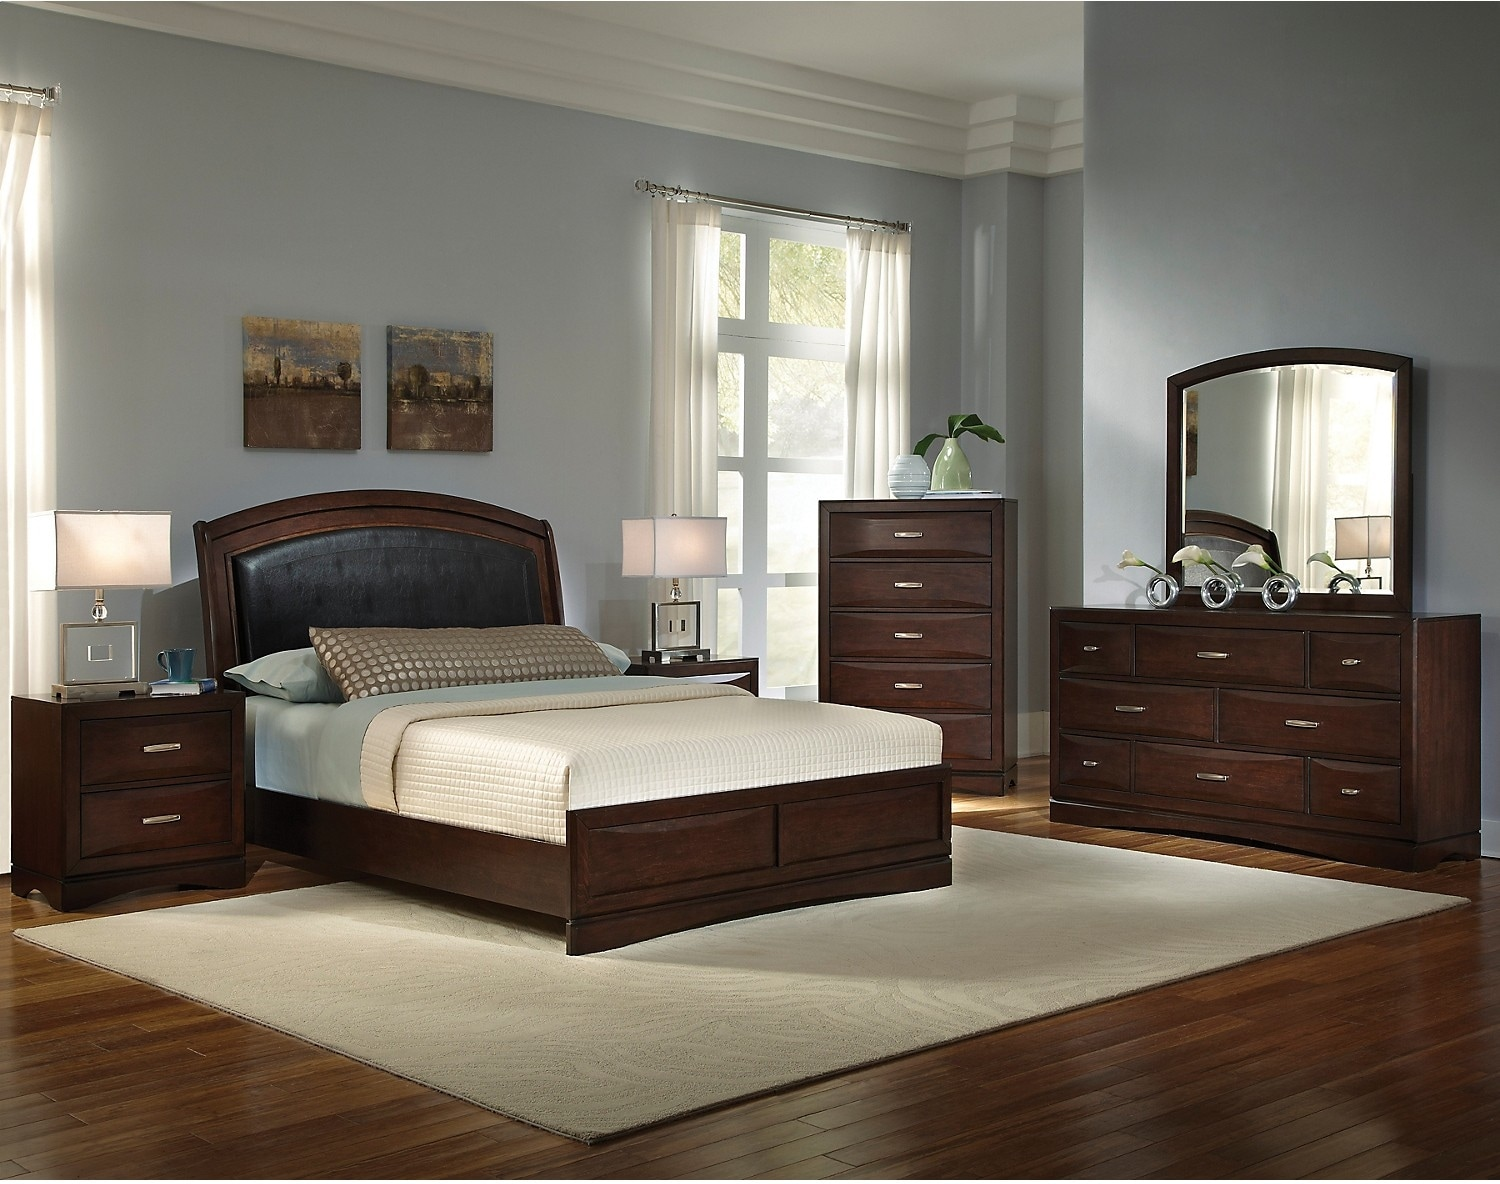 Beverly 8 piece queen bedroom set the brick for Bedroom furniture